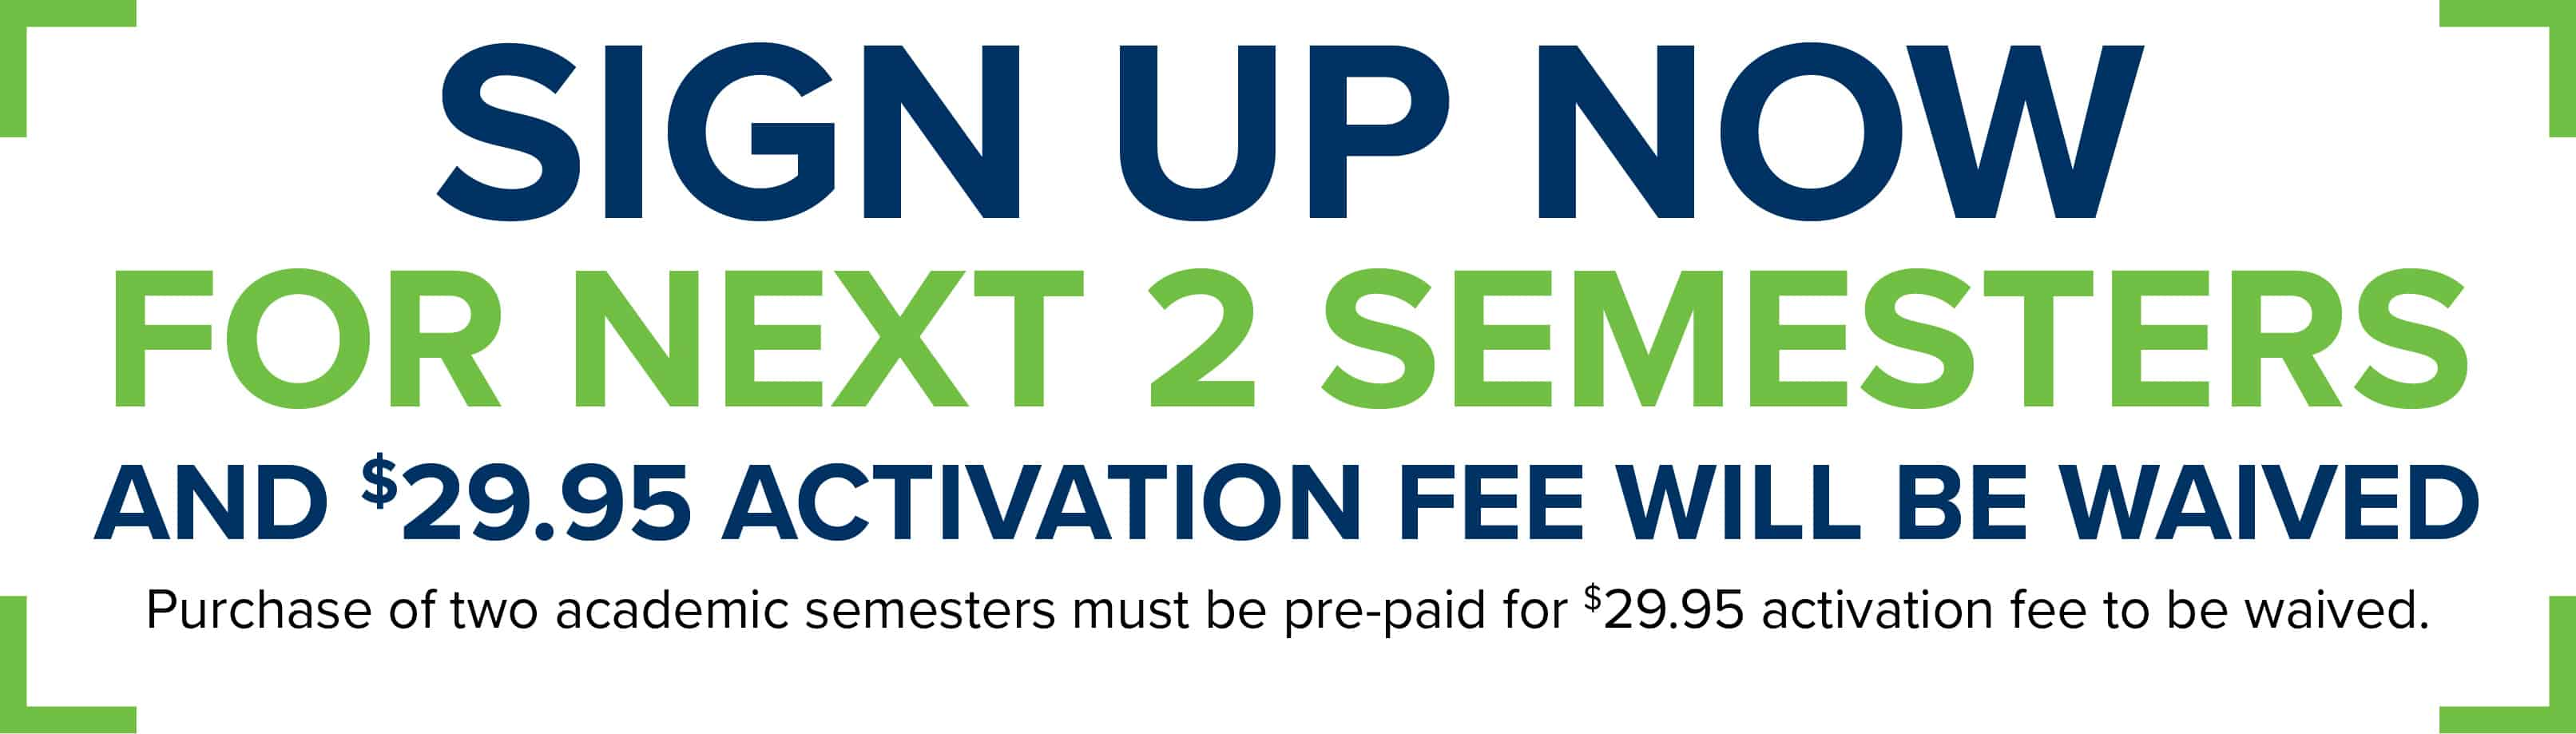 Sign up now and your activation fee will be waived | Student Internet Specials